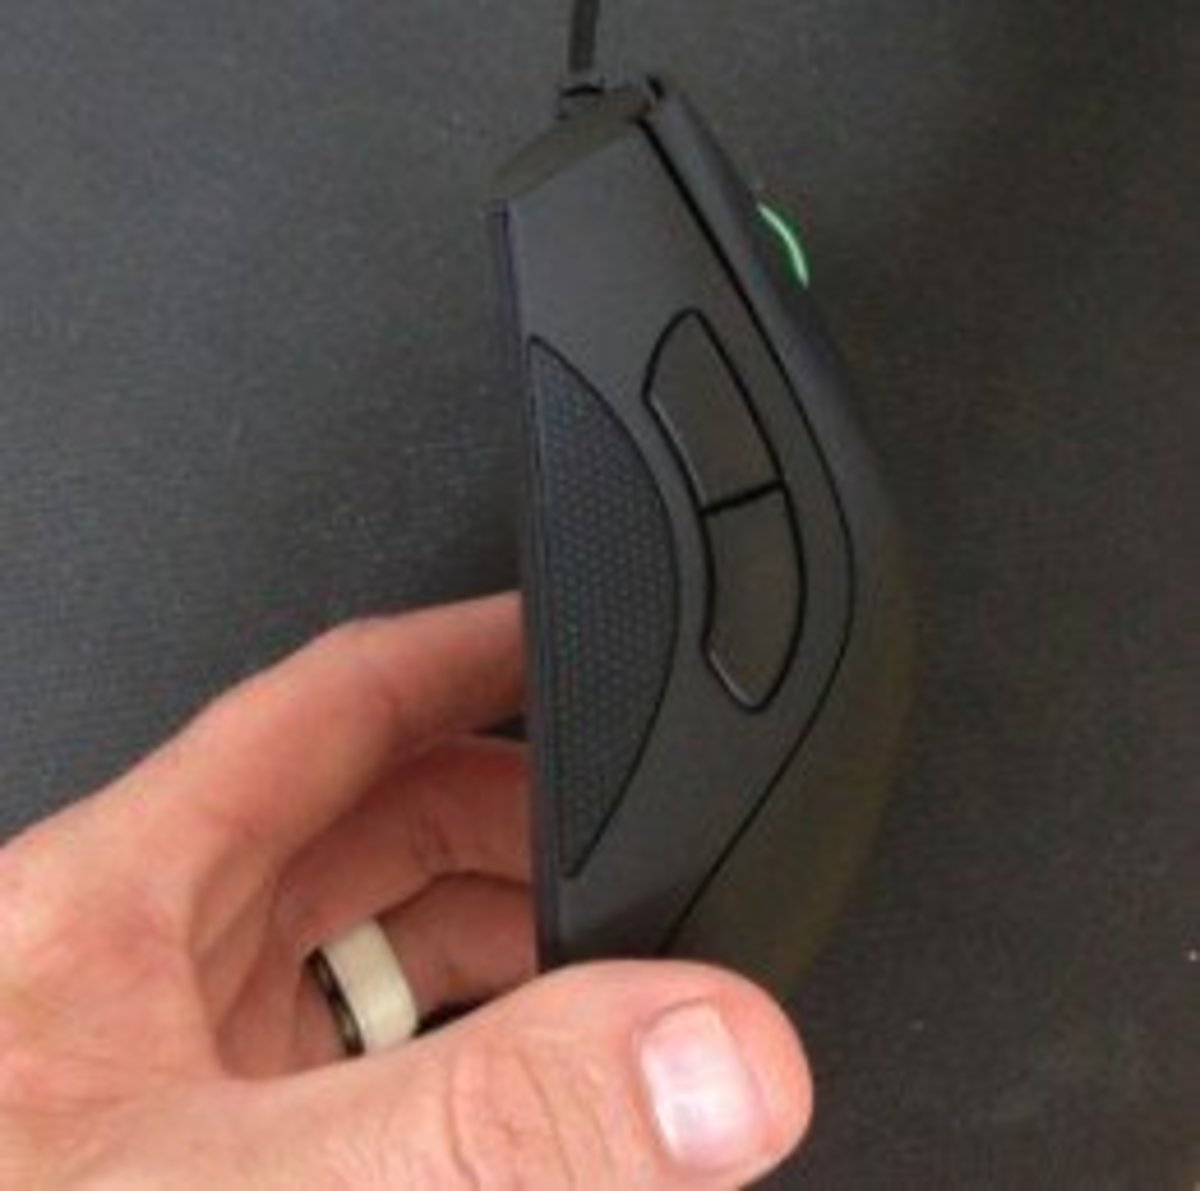 Here's a picture of me holding the Razer DeathAdder. As you can see the grips avoid that shiny slipper plastic that plagued earlier versions.